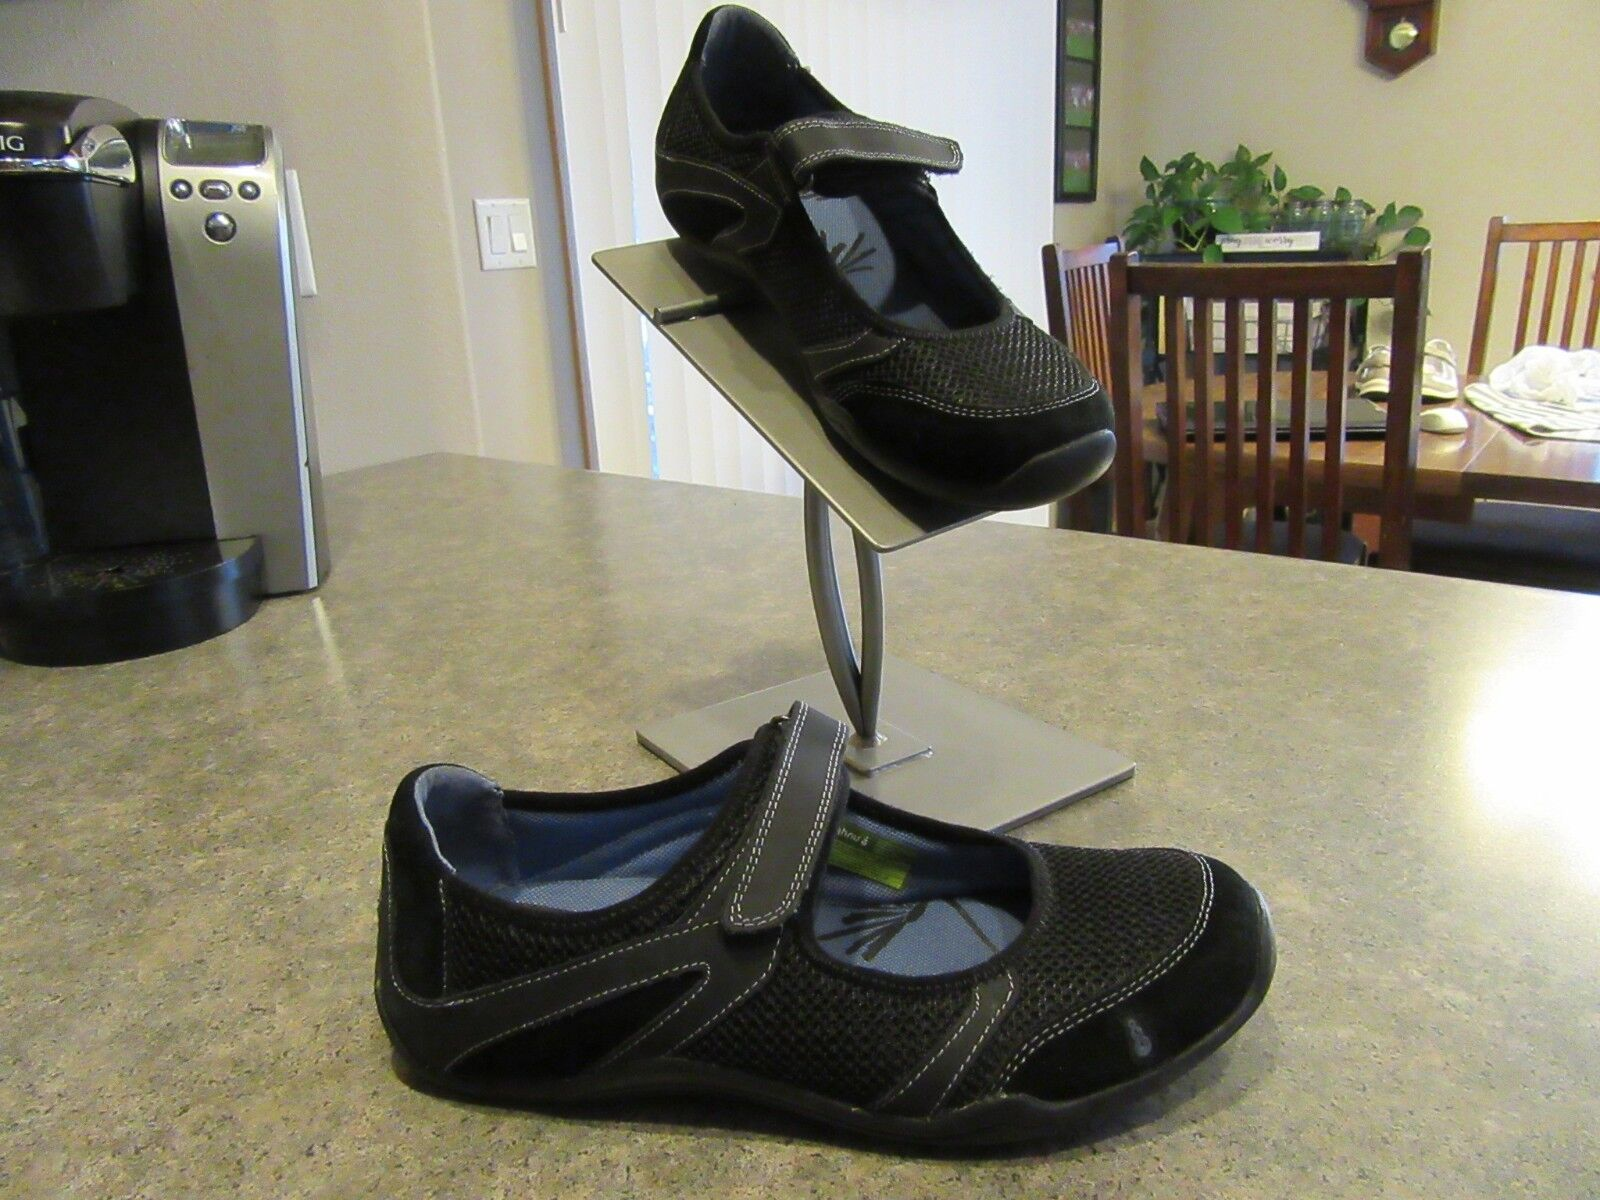 Womens AHNU Black Shoes Mary Jane Mesh Suede Shoes Black Size 7.5 Excellent Cond a93590